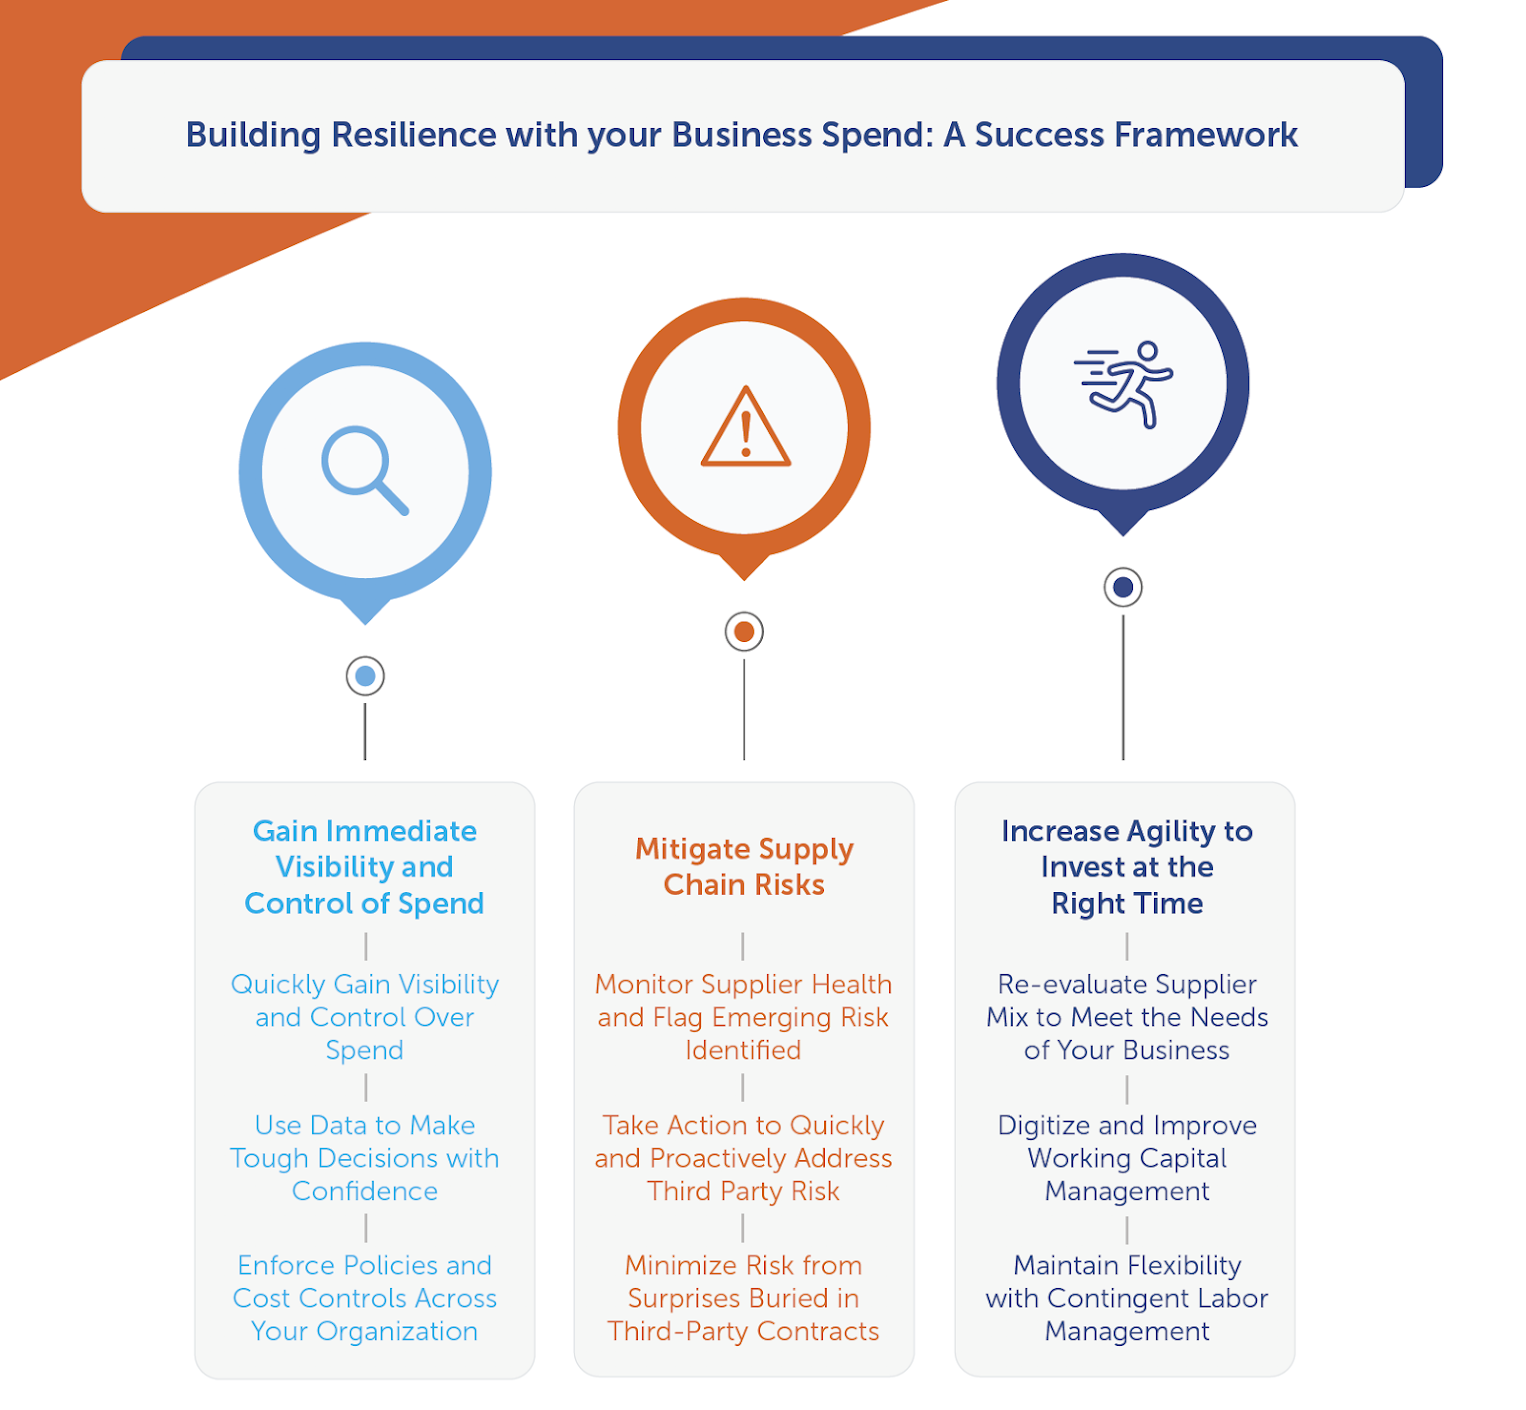 A framework for Finance and Procurement leaders to build resilience in times of business uncertainty A